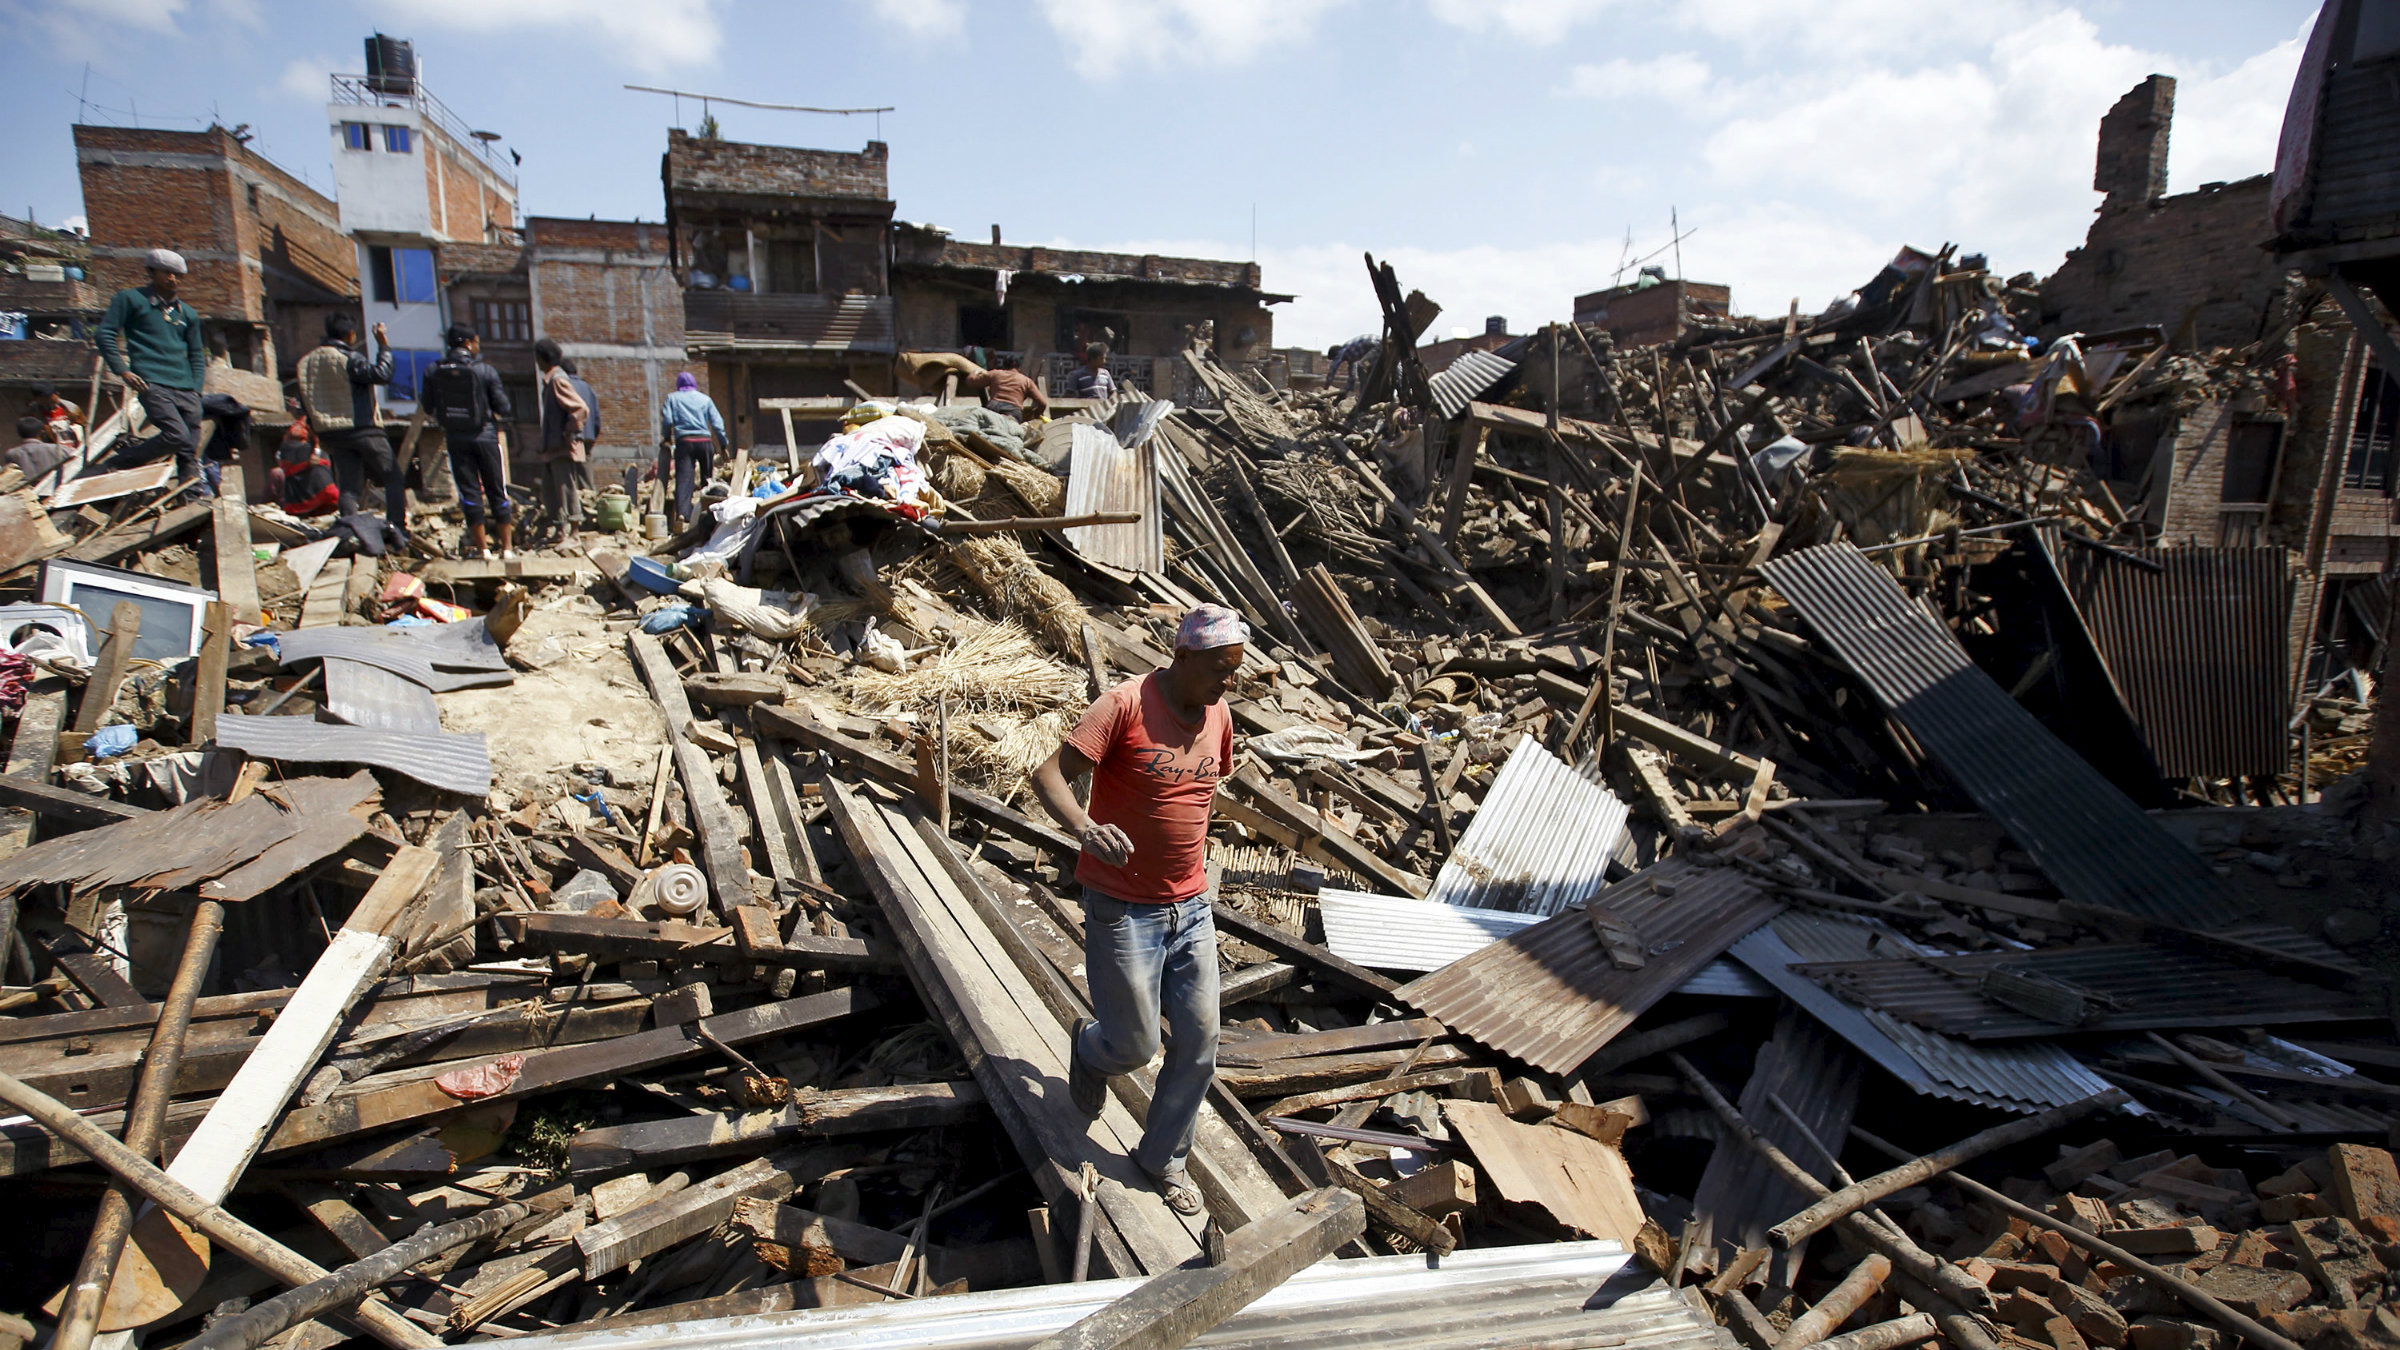 A man walks on the rubble of collapsed houses following Saturday's earthquake in Bhaktapur, Nepal April 27, 2015.